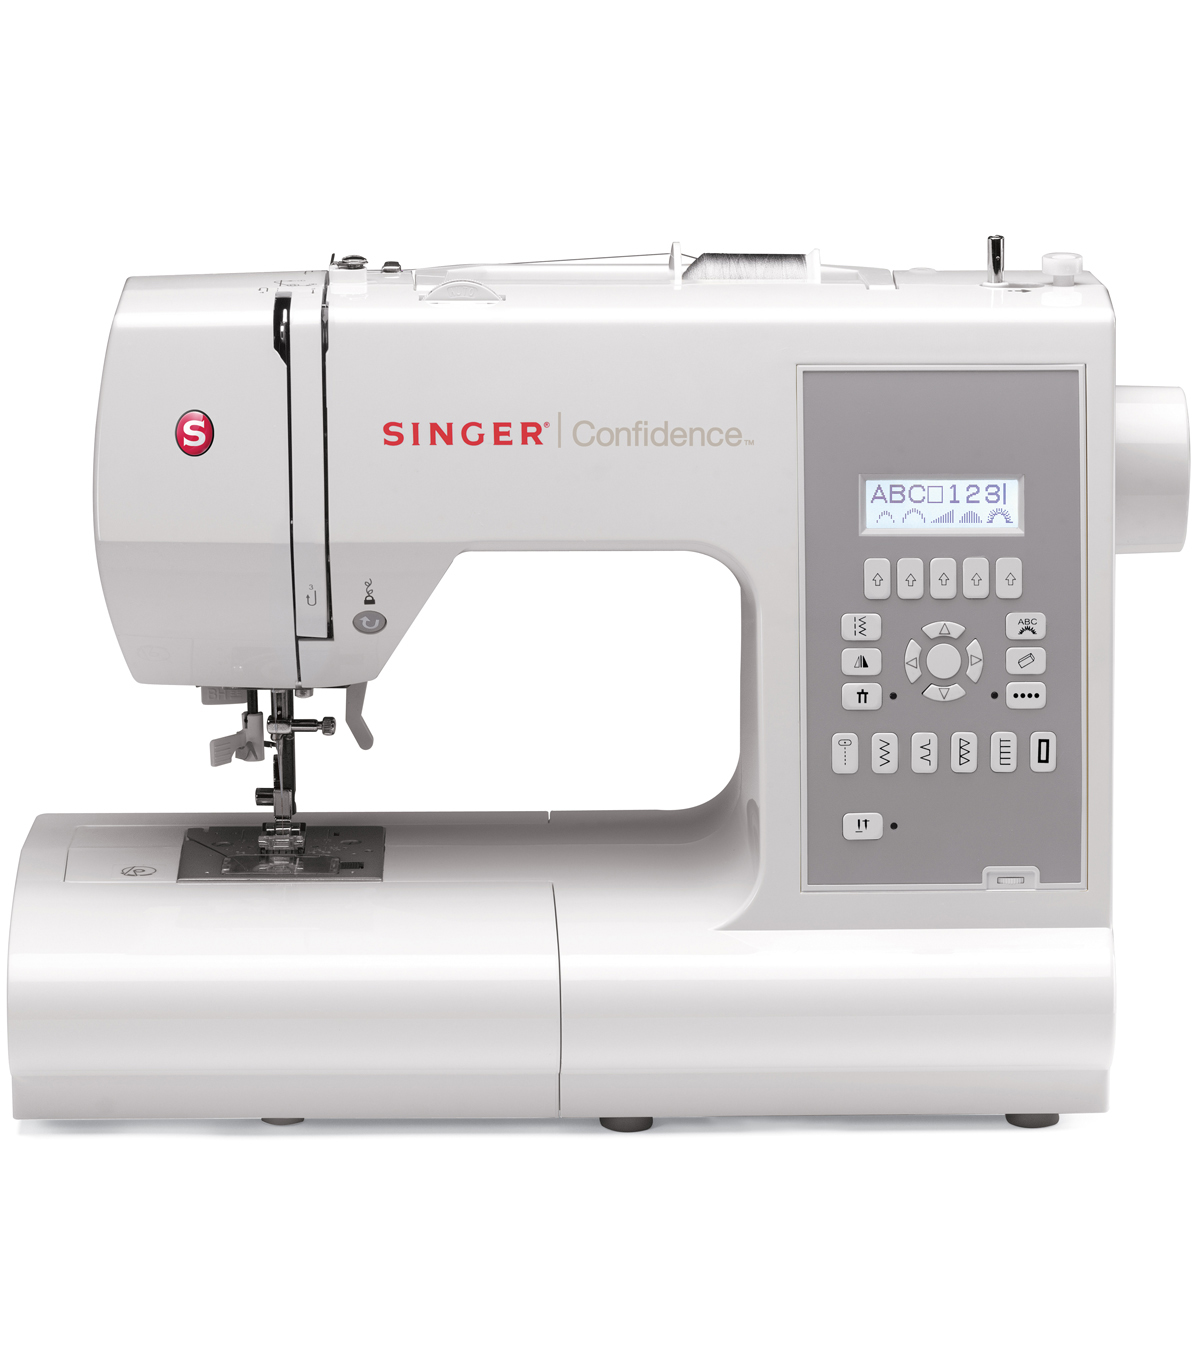 Singer 7470 Confidence Electronic Sewing Machine